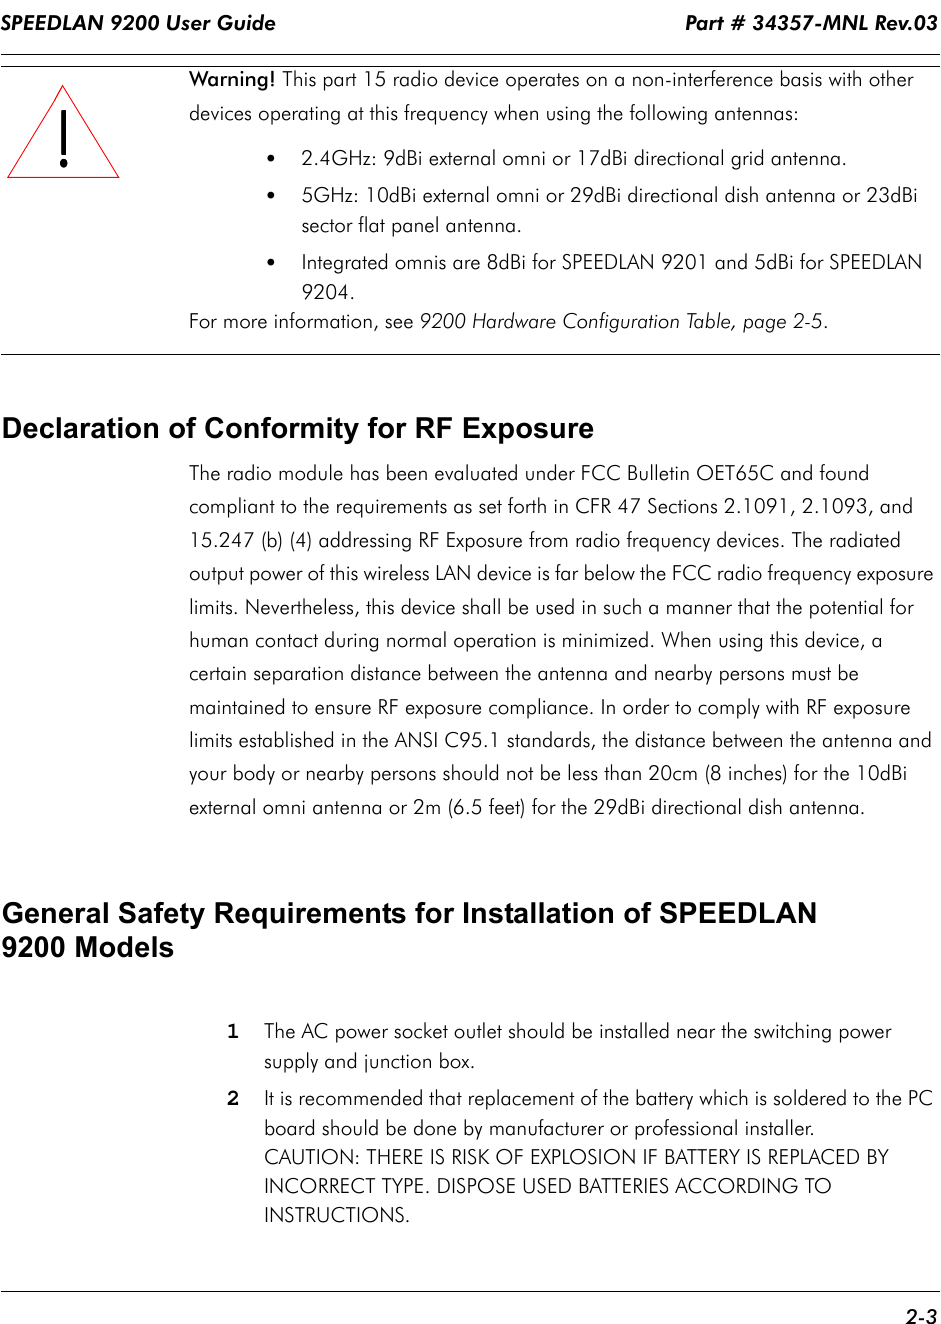 SPEEDLAN 9200 User Guide                                                                   Part # 34357-MNL Rev.03      2-3                                                                                                                                                              Warning! This part 15 radio device operates on a non-interference basis with other devices operating at this frequency when using the following antennas:  •  2.4GHz: 9dBi external omni or 17dBi directional grid antenna. •5GHz: 10dBi external omni or 29dBi directional dish antenna or 23dBi sector flat panel antenna.•Integrated omnis are 8dBi for SPEEDLAN 9201 and 5dBi for SPEEDLAN 9204. For more information, see 9200 Hardware Configuration Table, page 2-5.Declaration of Conformity for RF ExposureThe radio module has been evaluated under FCC Bulletin OET65C and found compliant to the requirements as set forth in CFR 47 Sections 2.1091, 2.1093, and 15.247 (b) (4) addressing RF Exposure from radio frequency devices. The radiated output power of this wireless LAN device is far below the FCC radio frequency exposure limits. Nevertheless, this device shall be used in such a manner that the potential for human contact during normal operation is minimized. When using this device, a certain separation distance between the antenna and nearby persons must be maintained to ensure RF exposure compliance. In order to comply with RF exposure limits established in the ANSI C95.1 standards, the distance between the antenna and your body or nearby persons should not be less than 20cm (8 inches) for the 10dBi external omni antenna or 2m (6.5 feet) for the 29dBi directional dish antenna.      General Safety Requirements for Installation of SPEEDLAN 9200 Models1The AC power socket outlet should be installed near the switching power supply and junction box.2It is recommended that replacement of the battery which is soldered to the PC board should be done by manufacturer or professional installer. CAUTION: THERE I